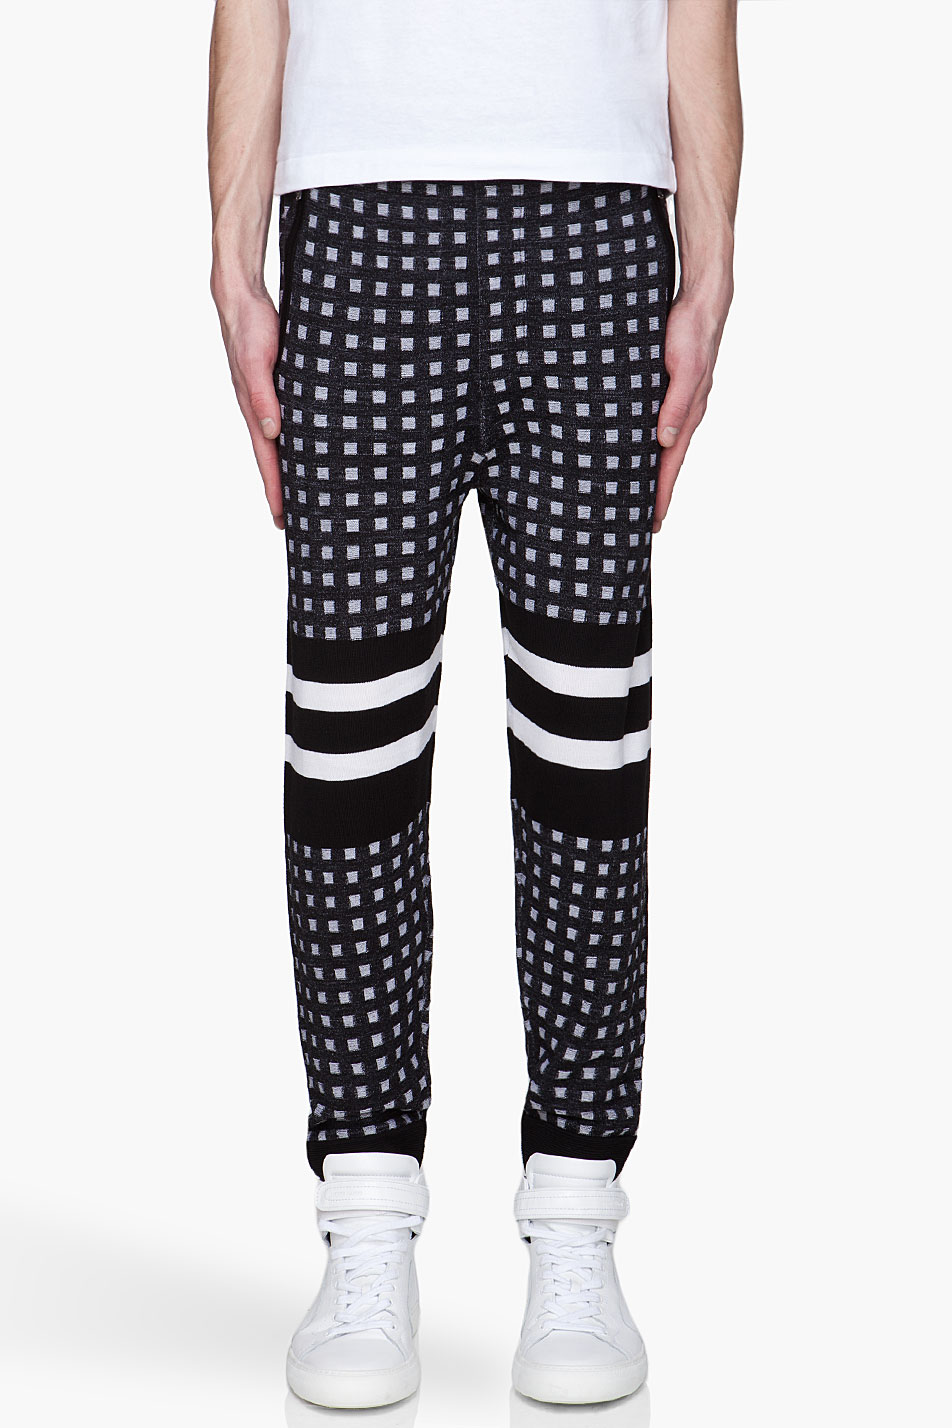 3.1 Phillip Lim trousers.jpg